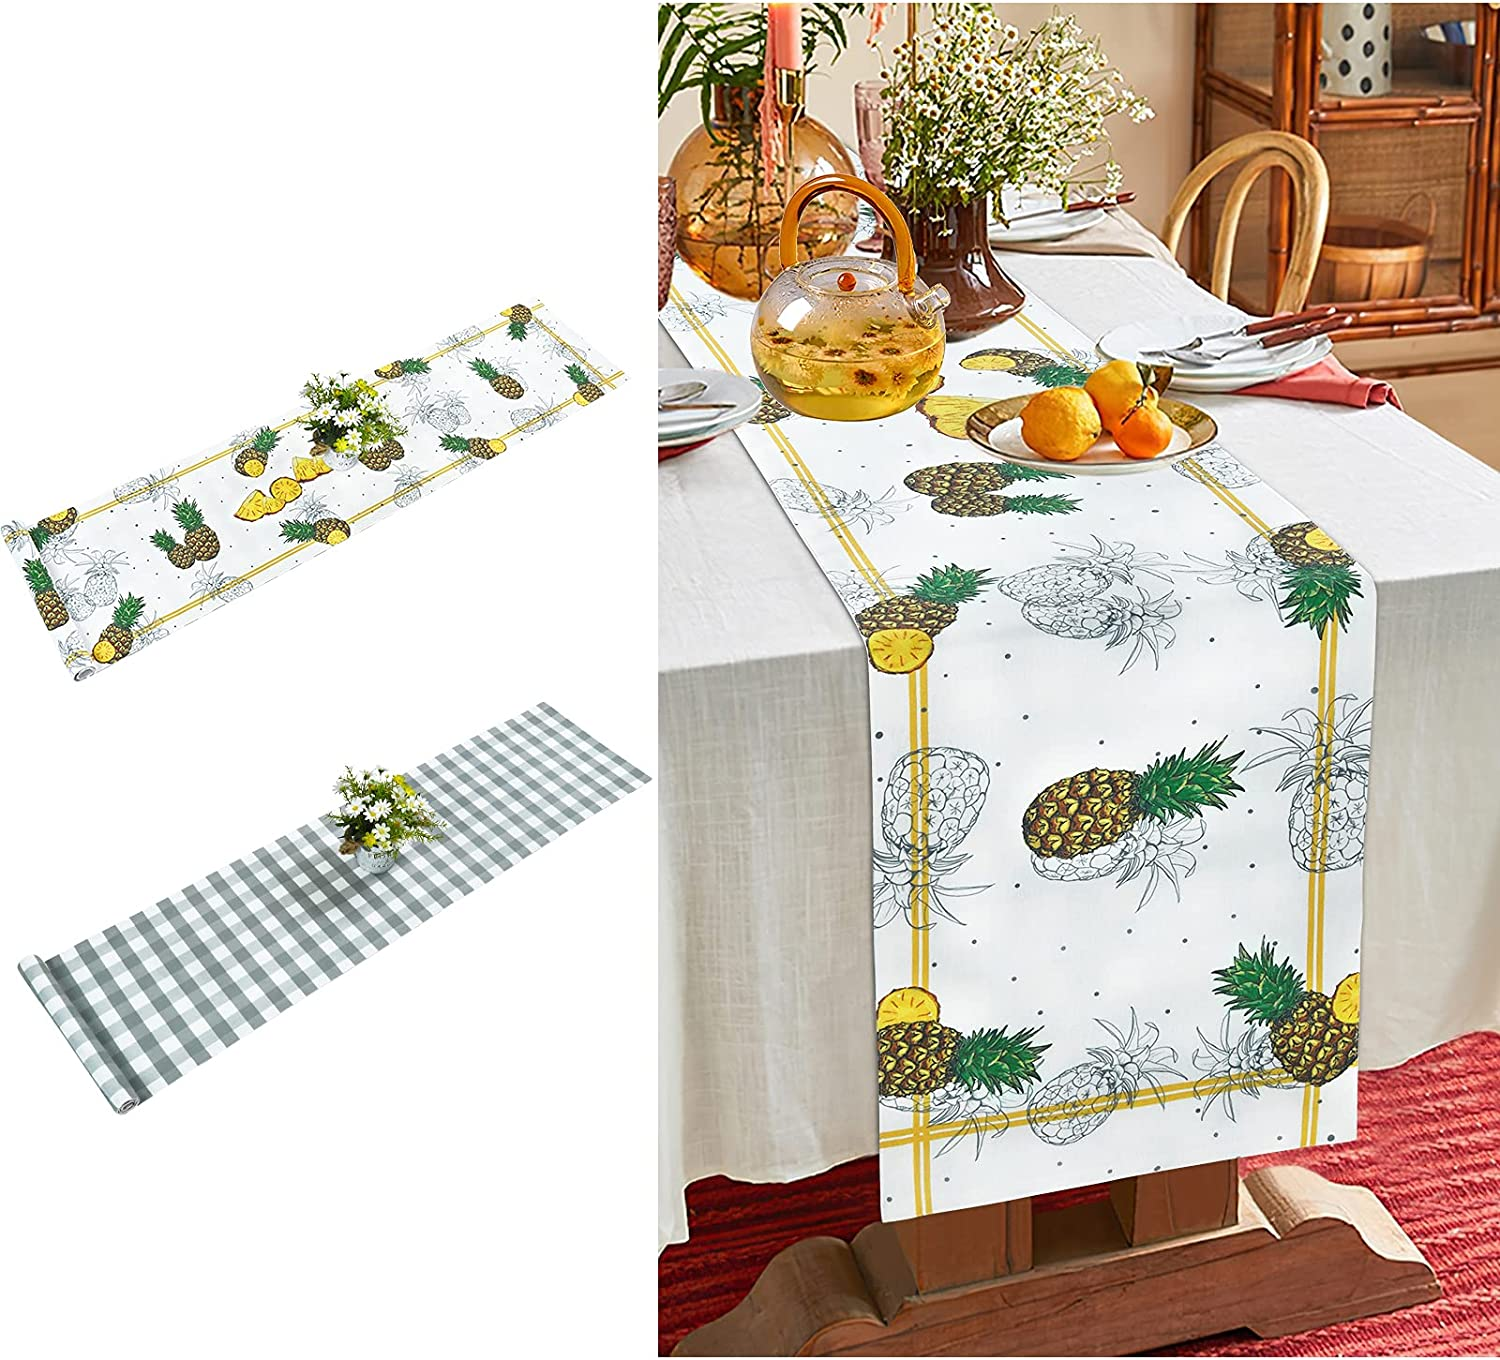 ASPMIZ Summer Pineapple Table Runner Double Sided, Reversible Table Runner 70 Inches Long, Buffalo Plaid Table Runners for Farmhouse Kitchen, Dinner Holiday Parties Wedding Decor, 13 X 72 Inch